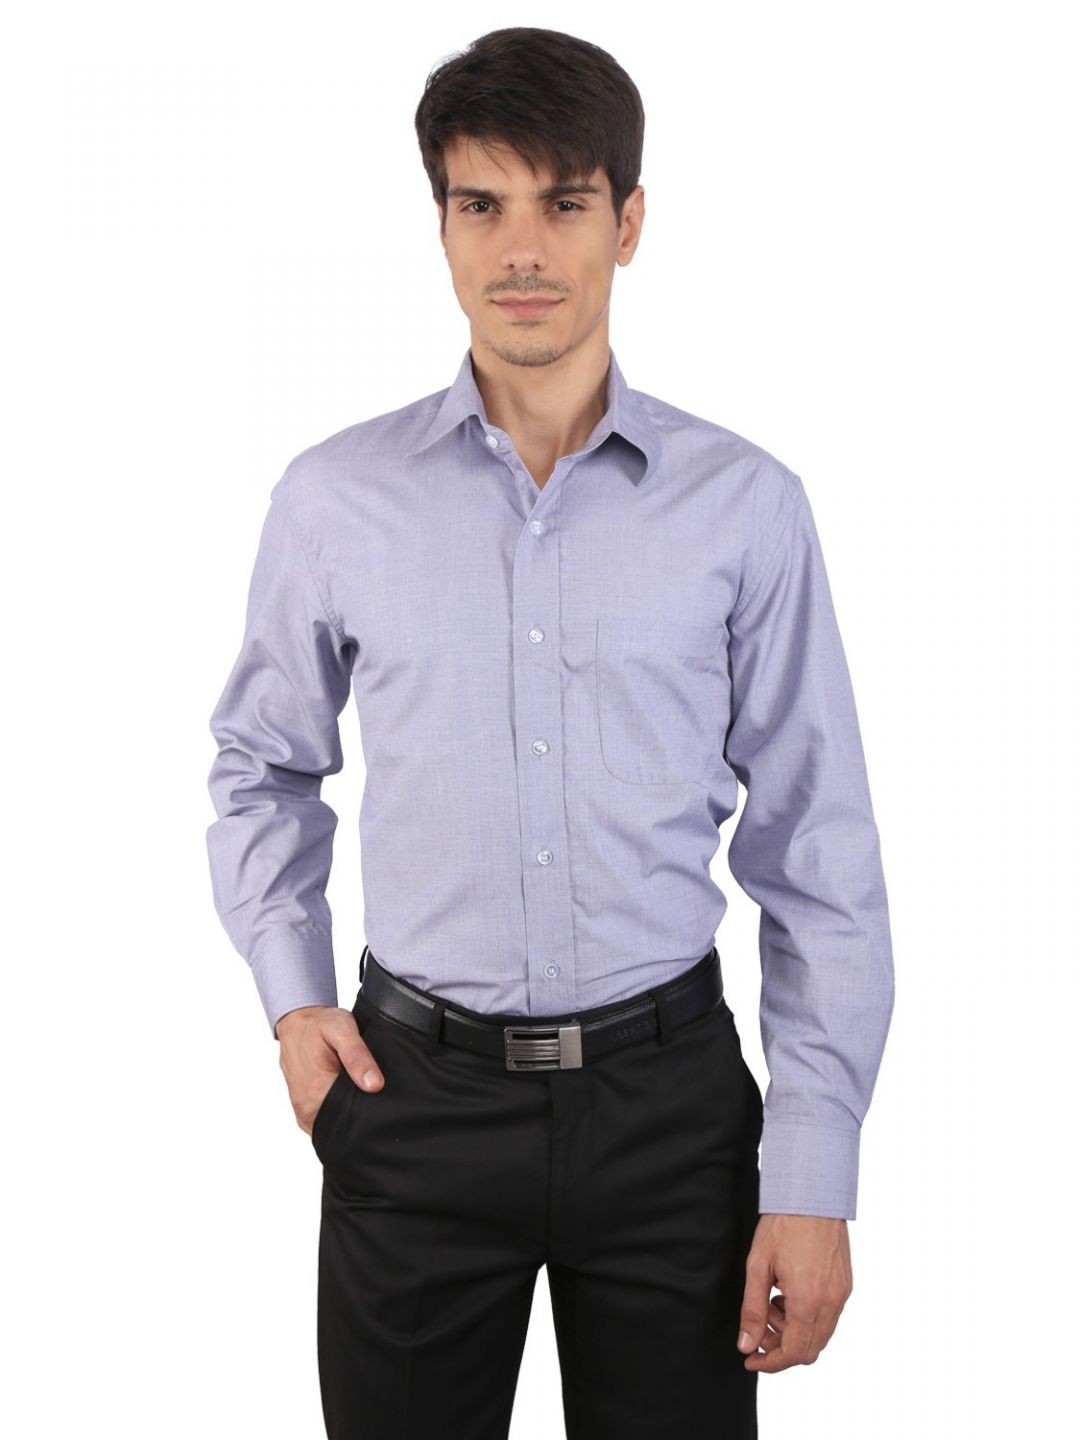 JAPs Men's Lavender Solids Formal Shirt